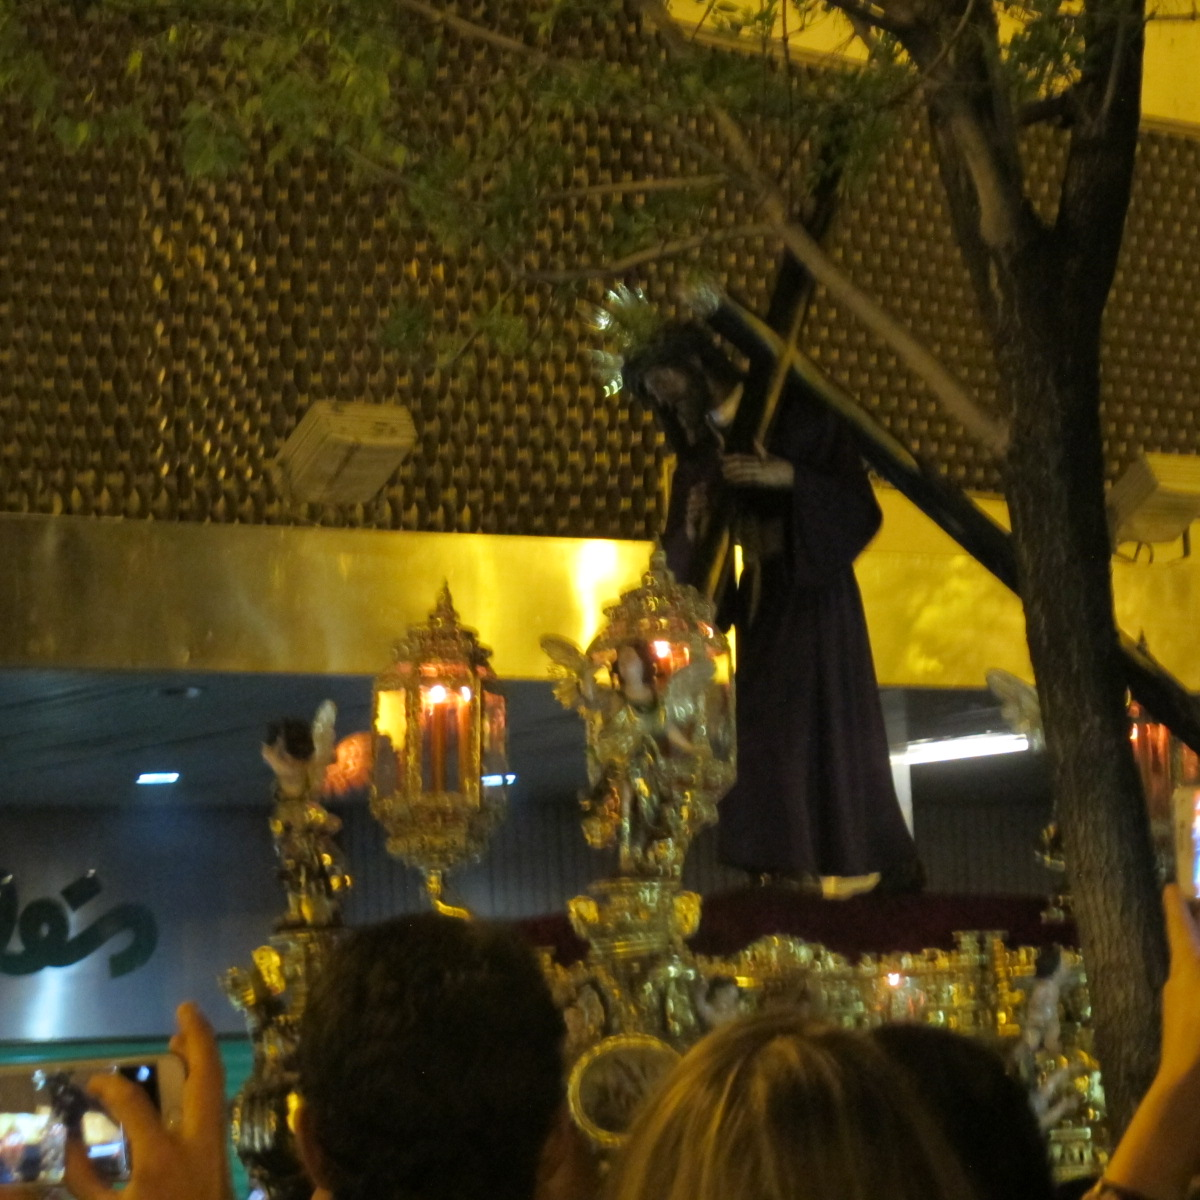 The Madrugada (early hours) Jesus del Gran Poder is one of the city´s most venerated religious works of art.